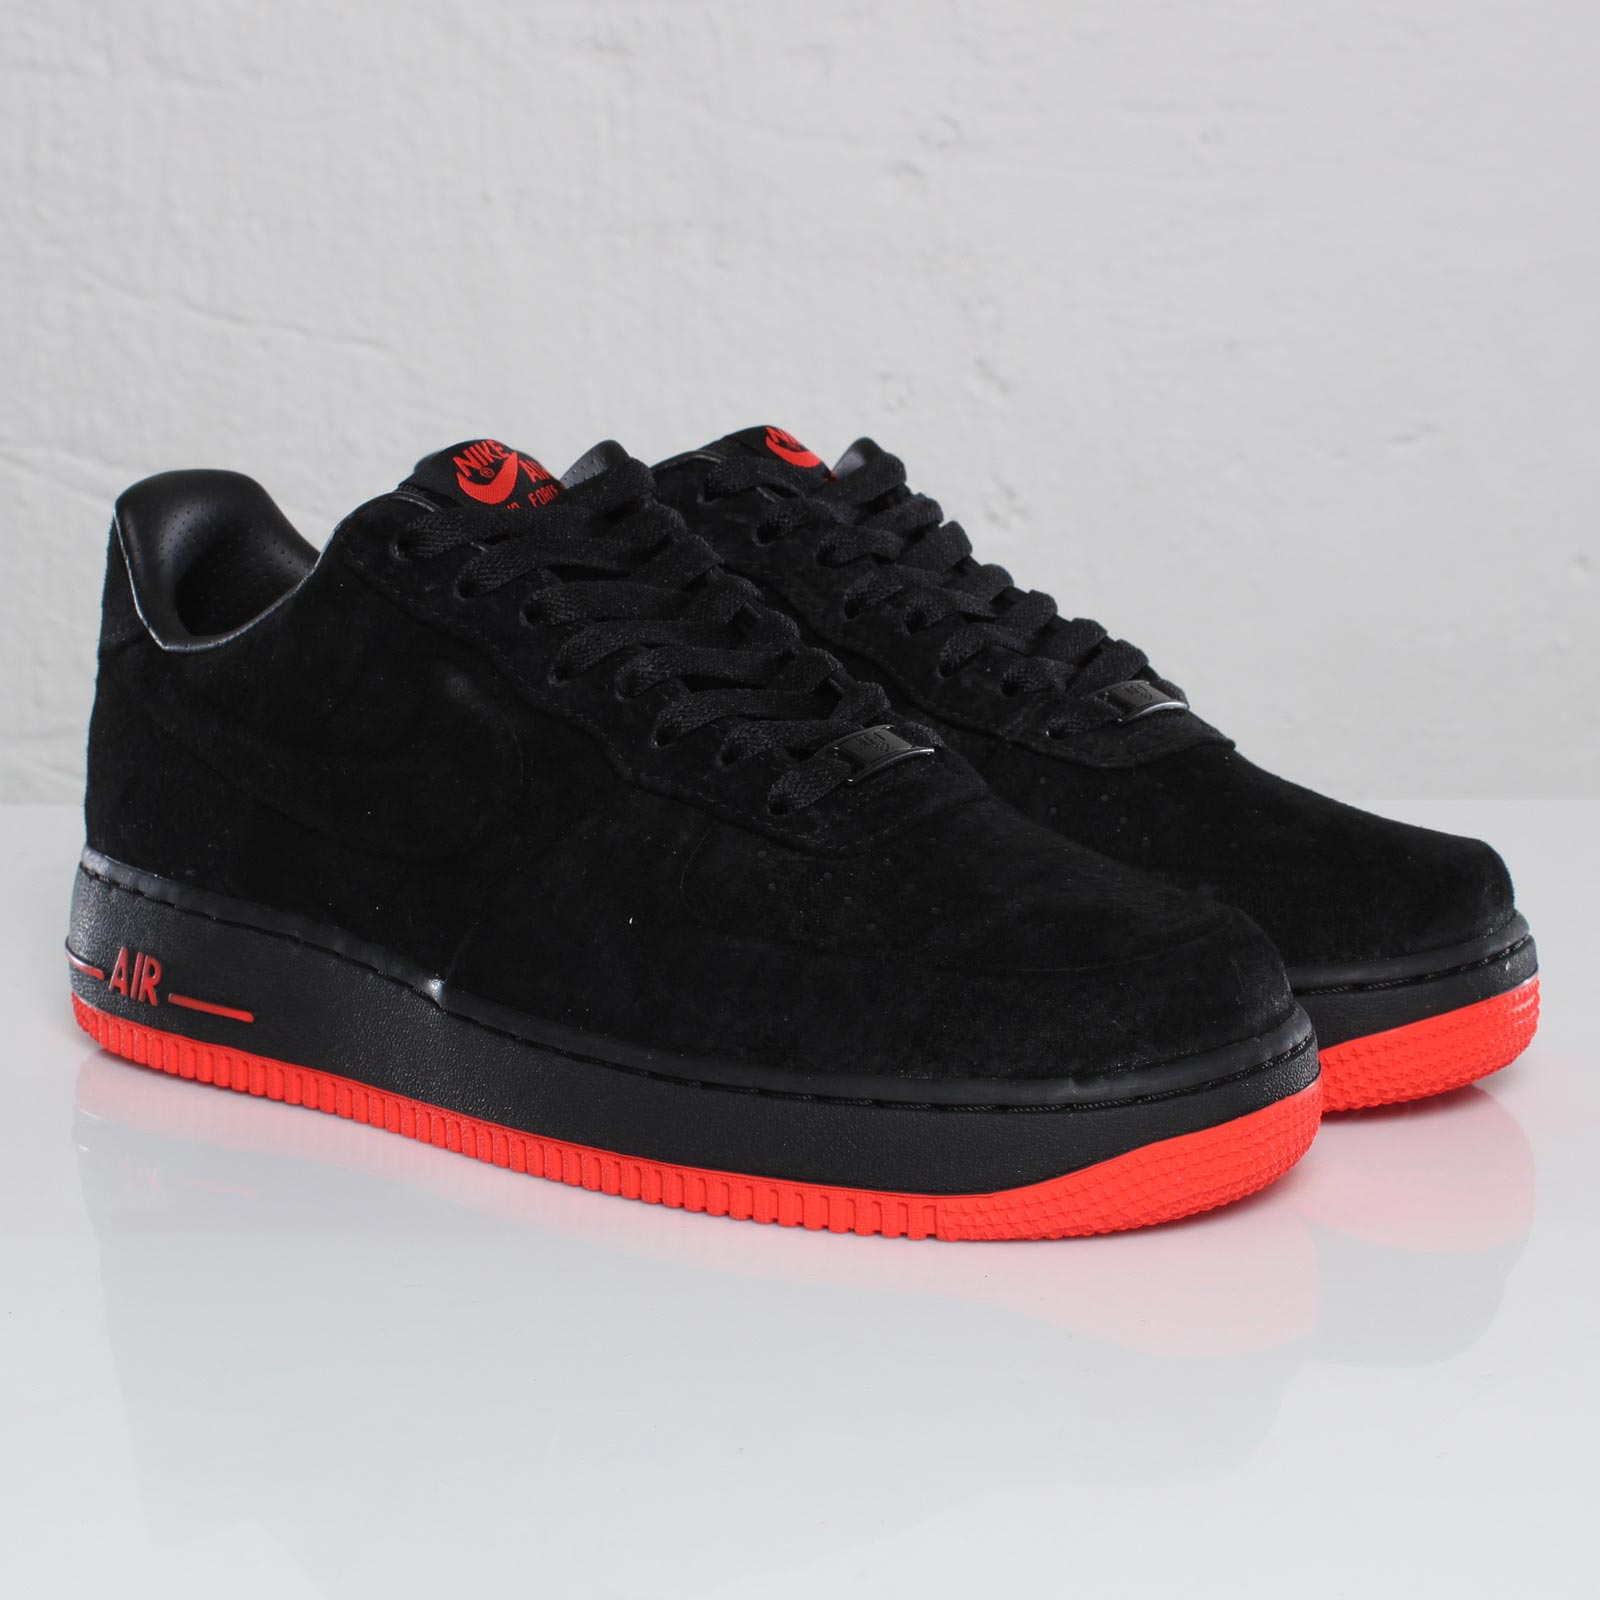 Air Force 1 Black And Red